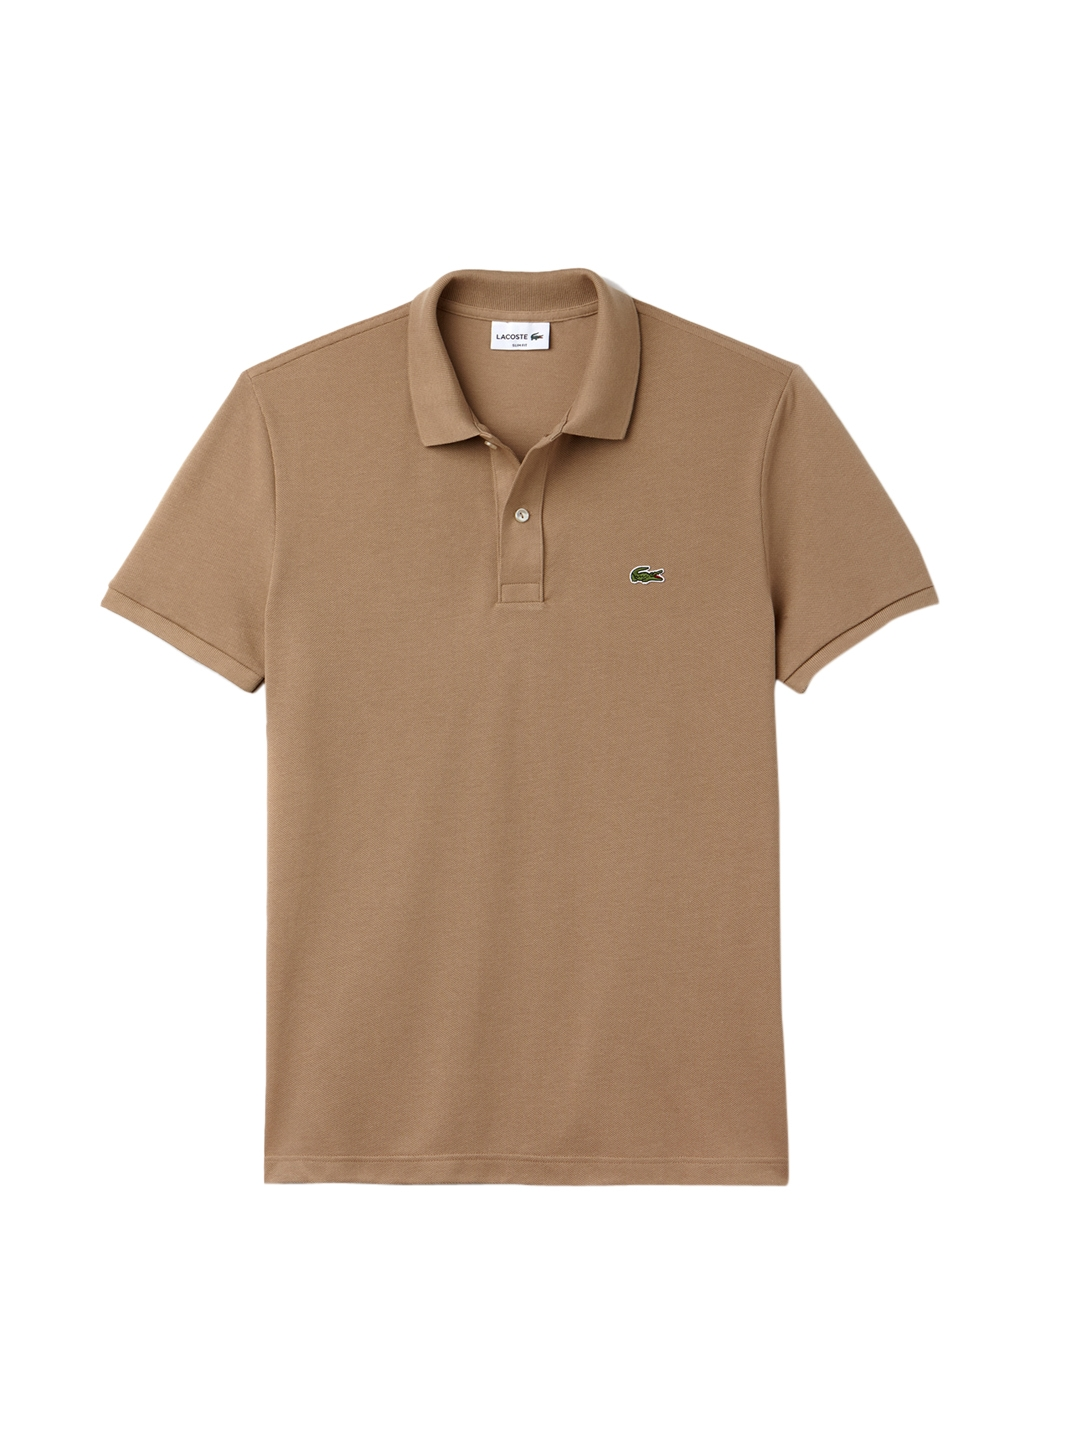 88c436d205 Lacoste Men Beige Solid Polo Collar T-shirt